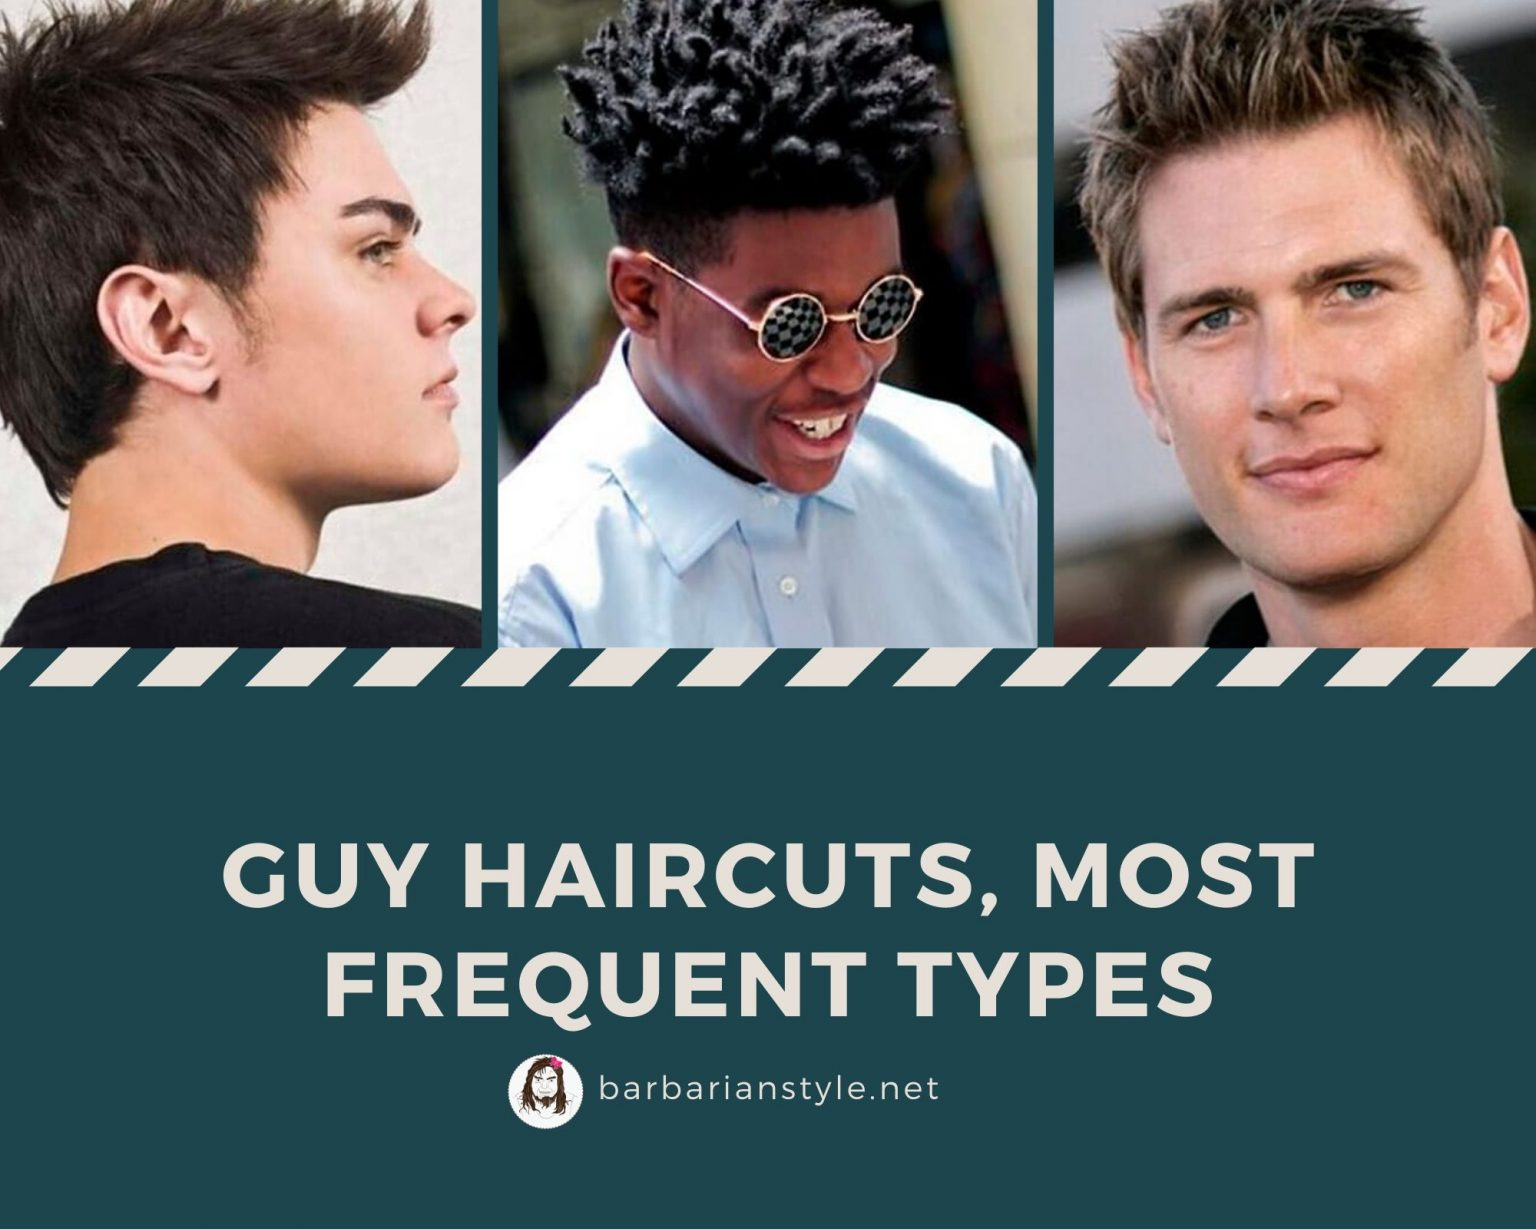 Guys' Haircuts, Most Frequent and Impressive Types